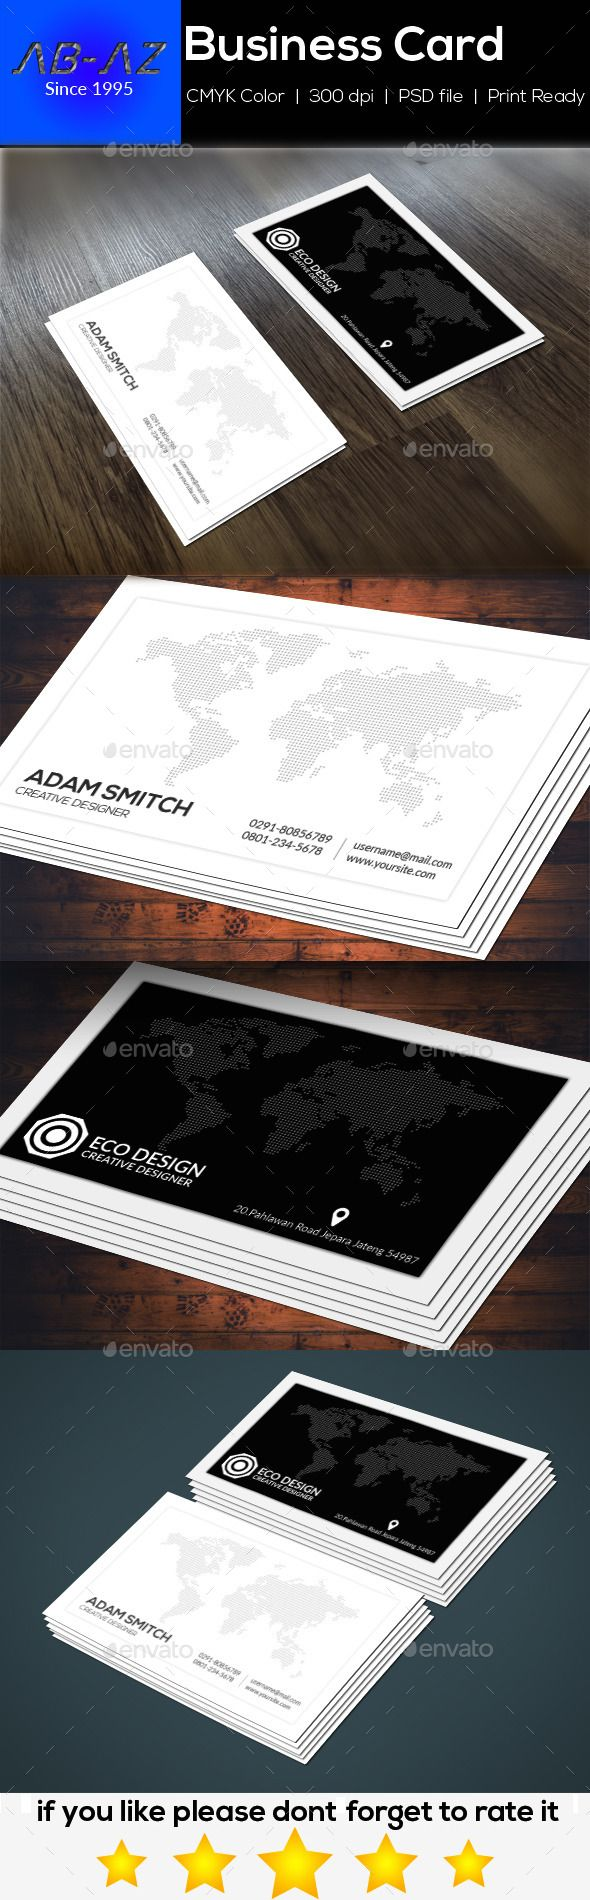 Business card suggestions gallery free business cards best 25 cleaning business cards ideas on pinterest business simple clean business card magicingreecefo gallery magicingreecefo Image collections